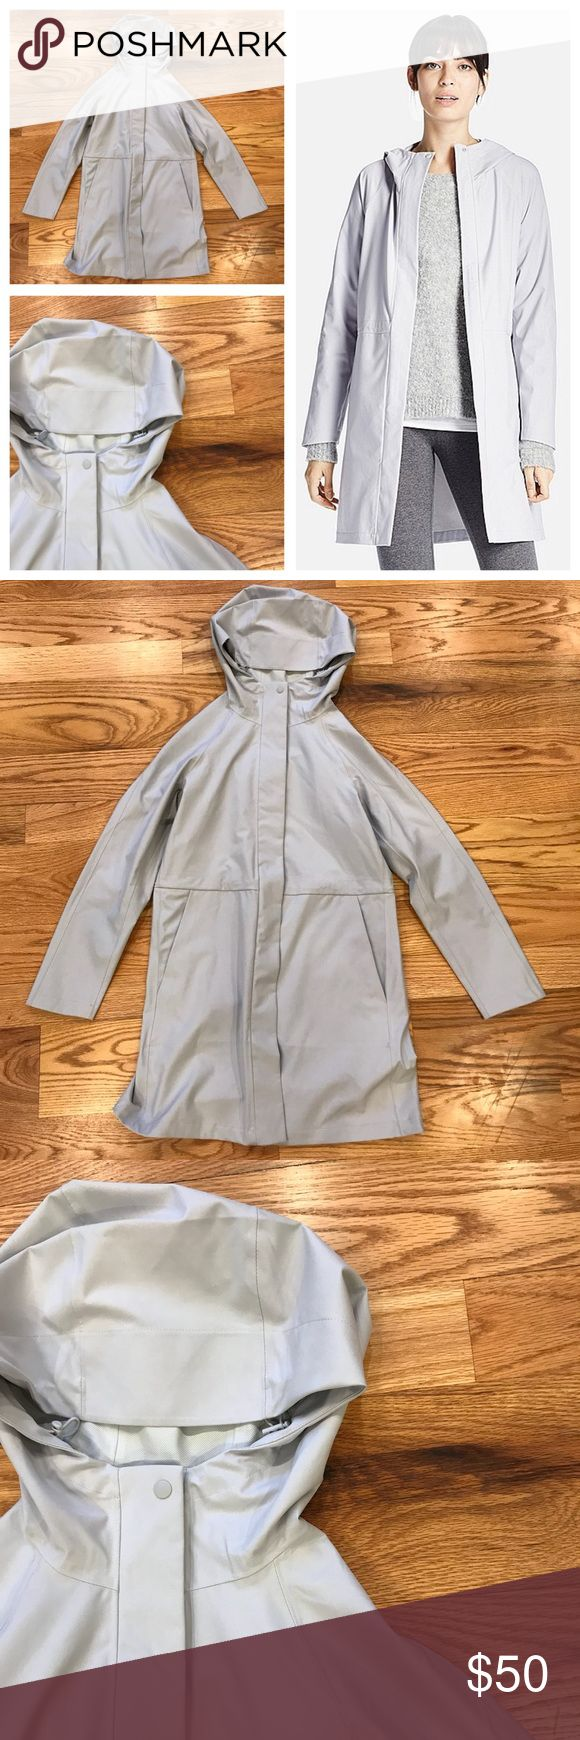 Uniqlo Blocktech Rain Jacket Cool light grey Uniqlo Blocktexh Rain Jacket/Coat. Size small. In like new condition. Feel free to ask any questions below or make me an offer. Bought last fall at the Uniqlo flagship store in Ginza, Tokyo and worn once. Uniqlo Jackets & Coats